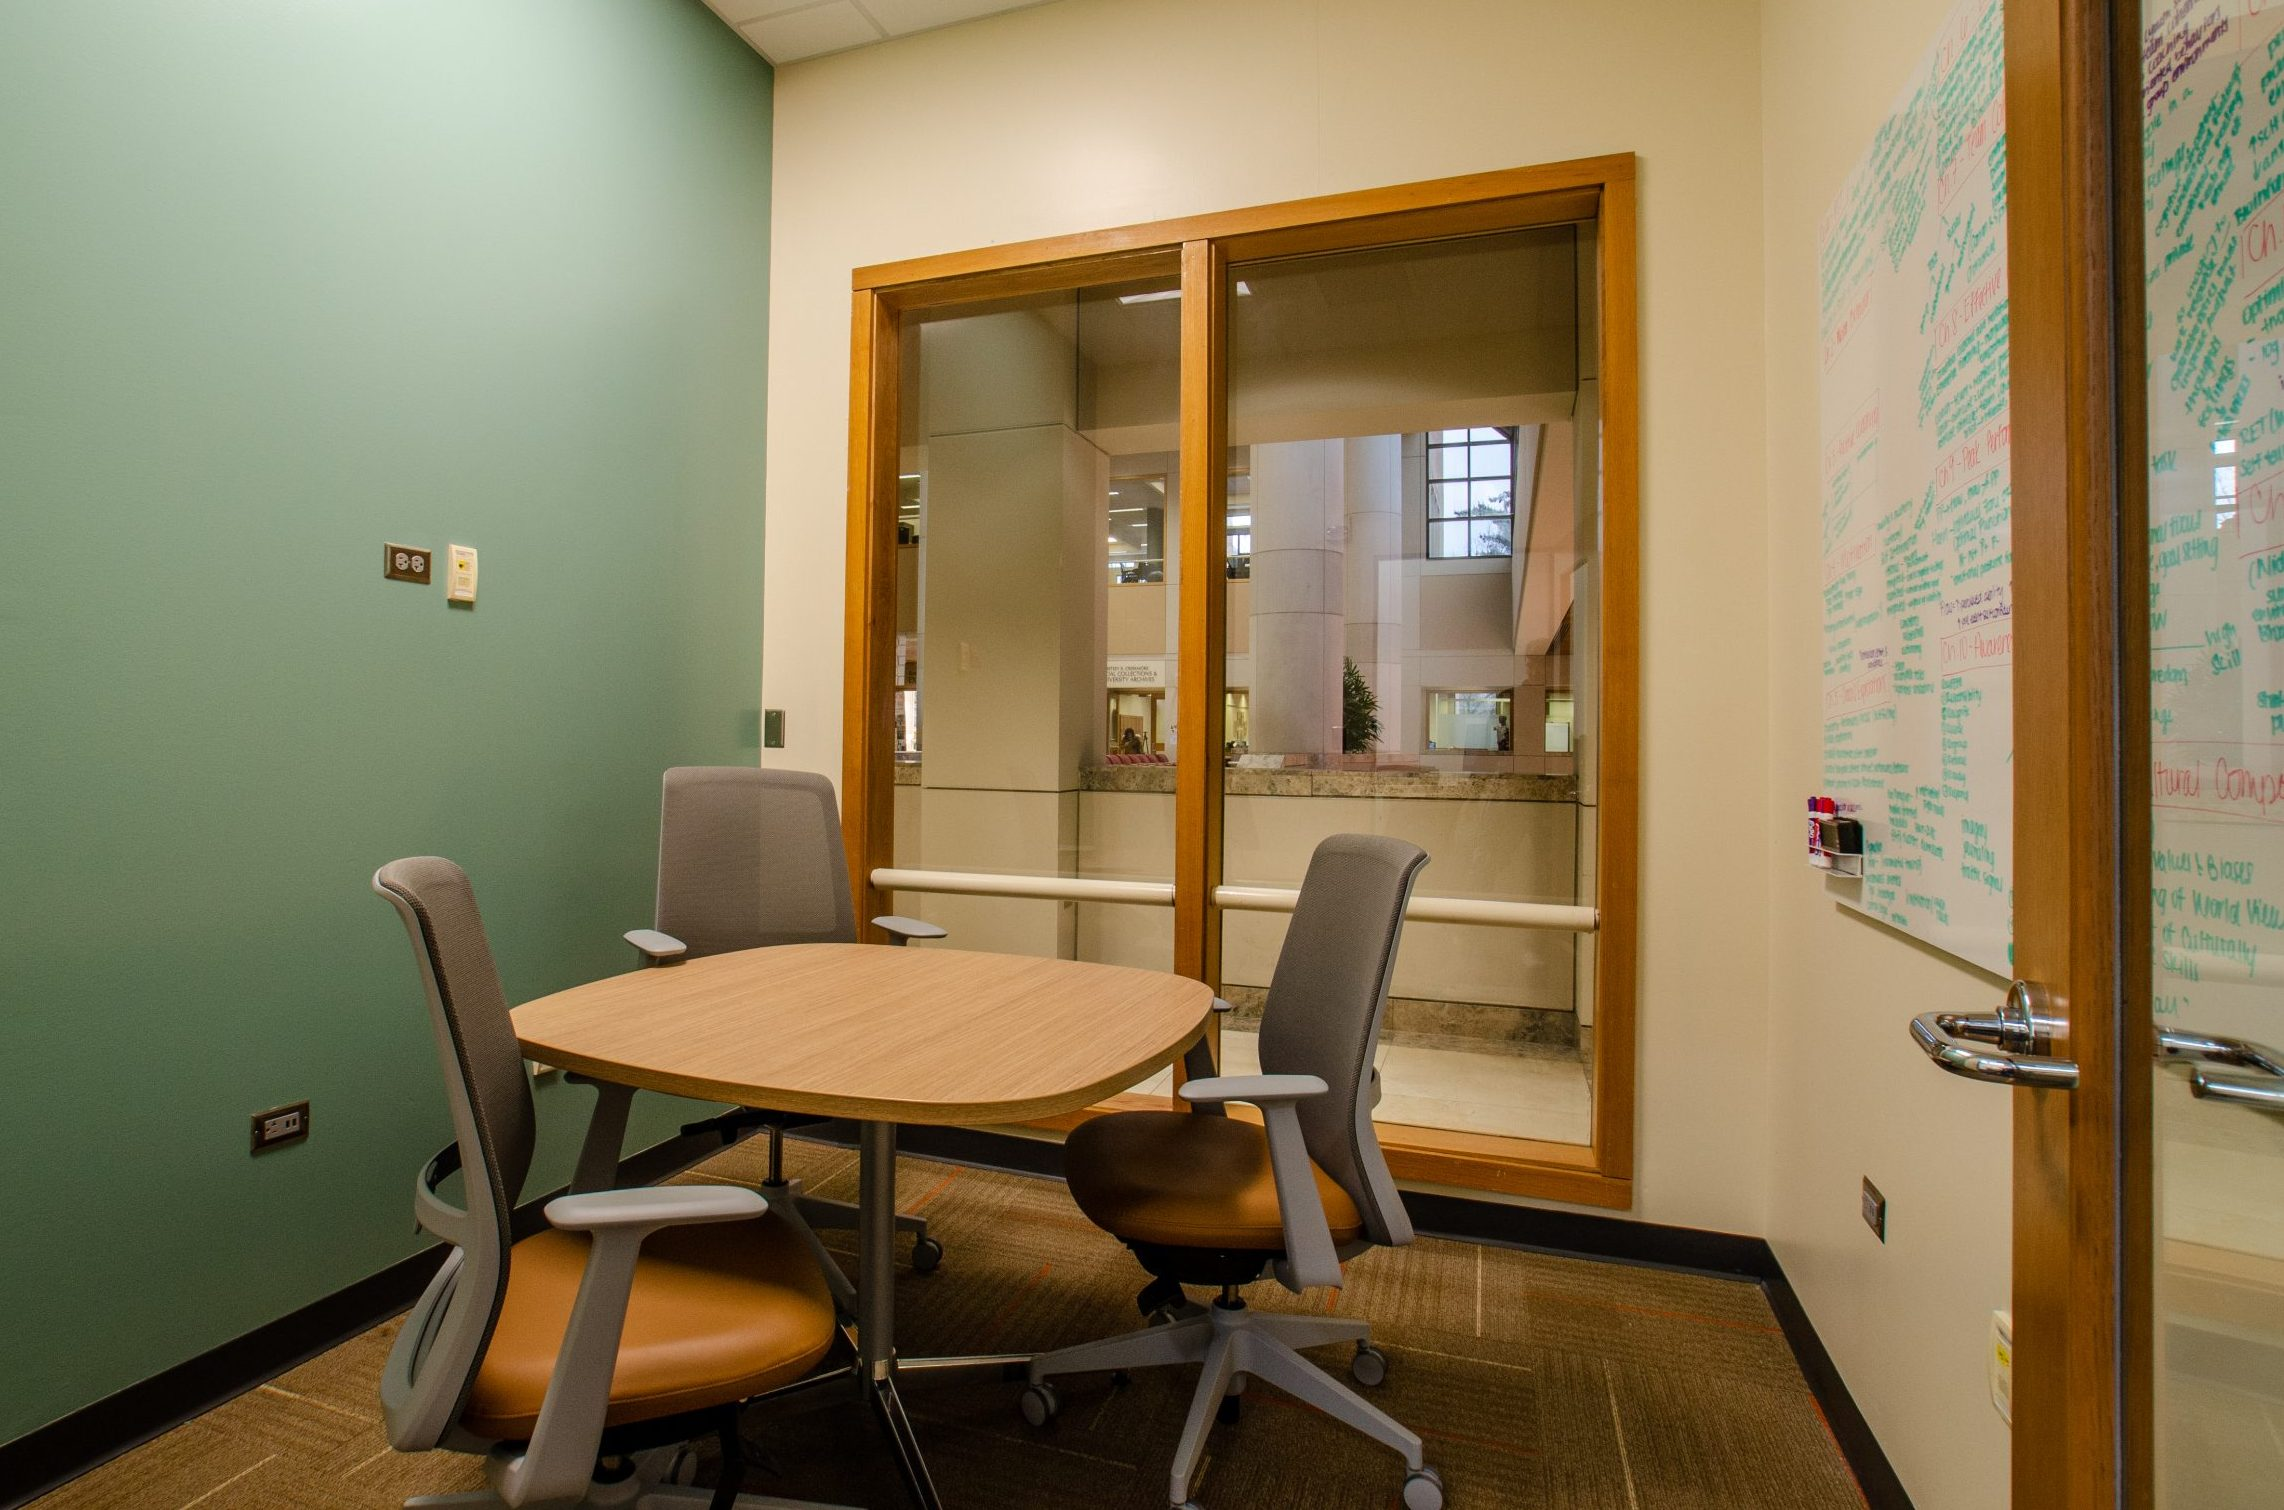 Graduate Commons Study Rooms - Small hodges library university of tennessee